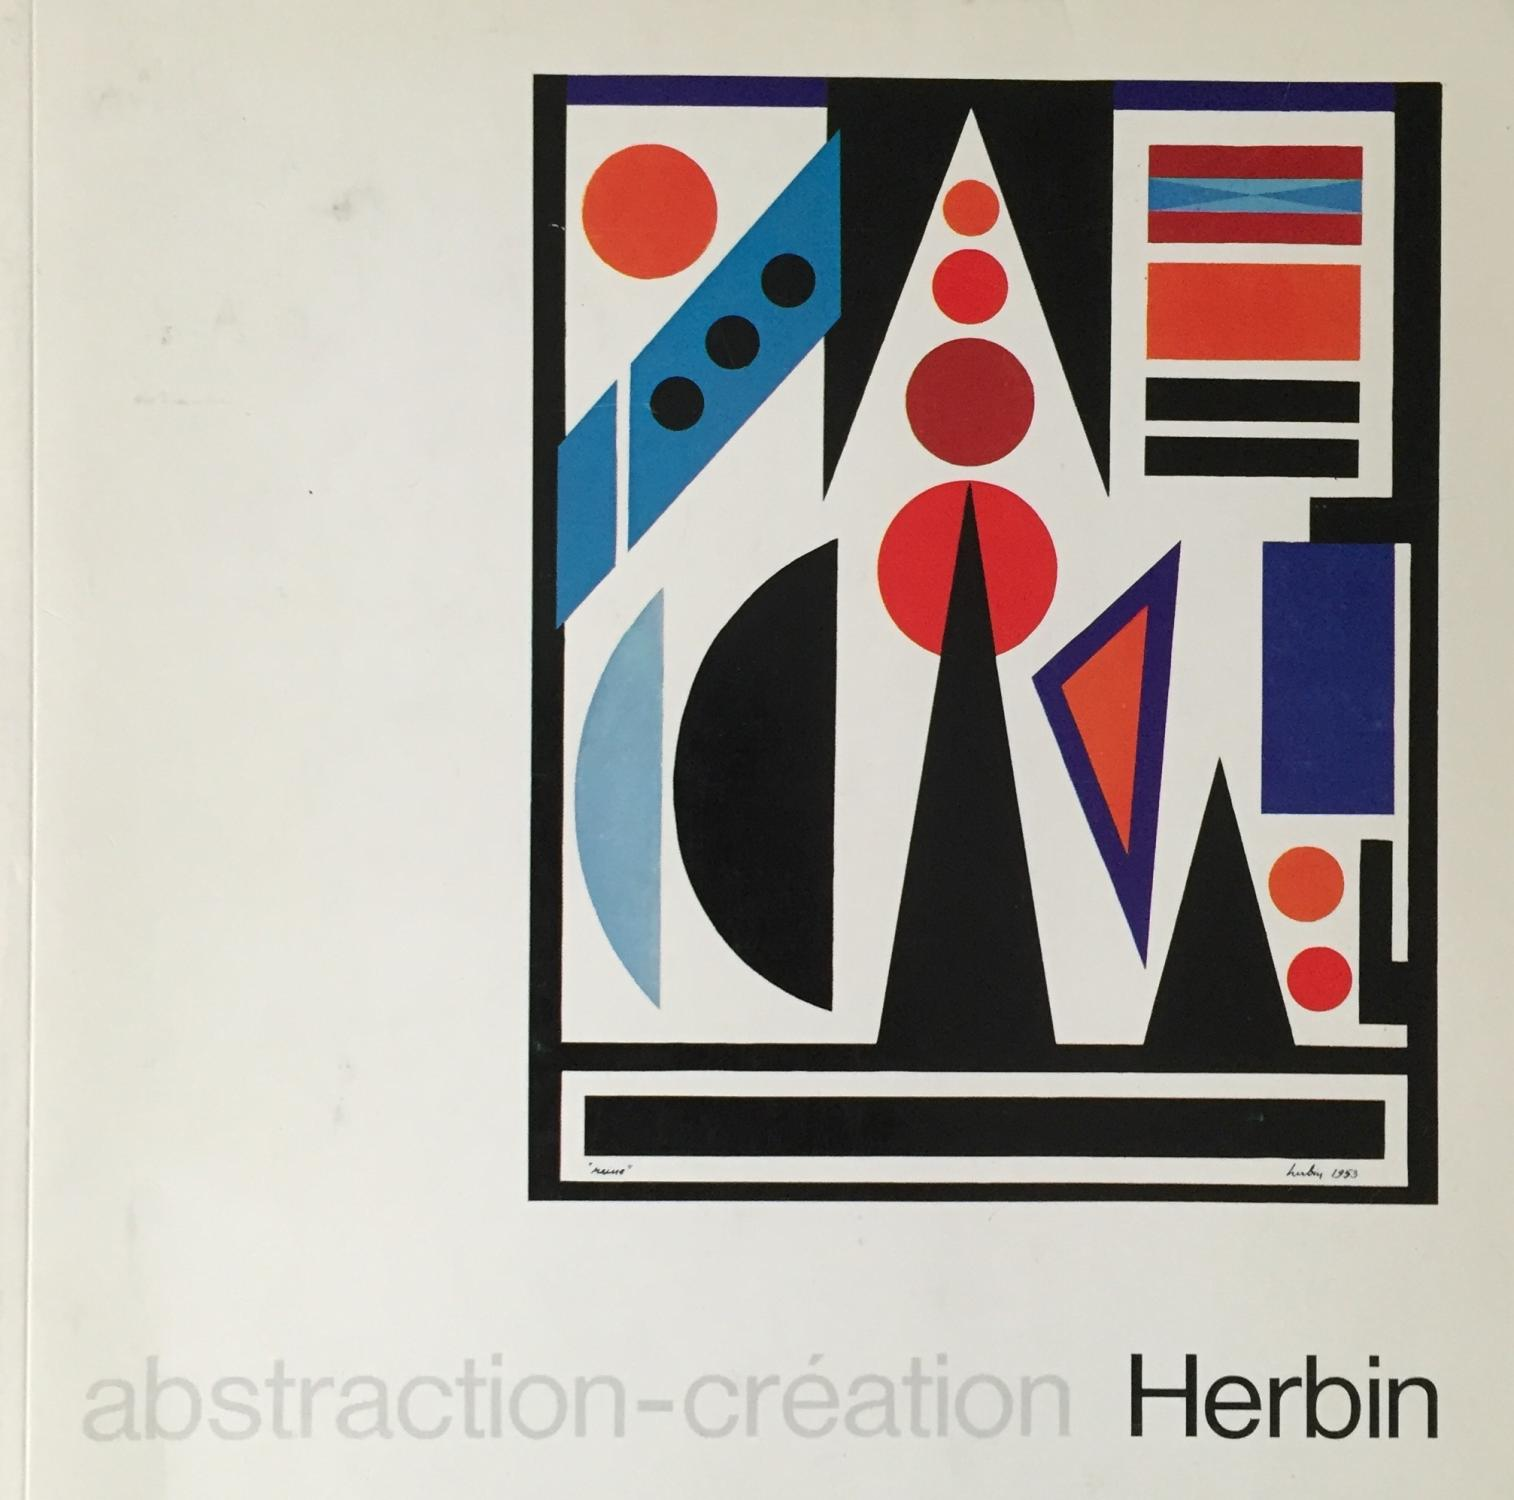 abstraction-création. Auguste Herbin, + Etienne Béothy.